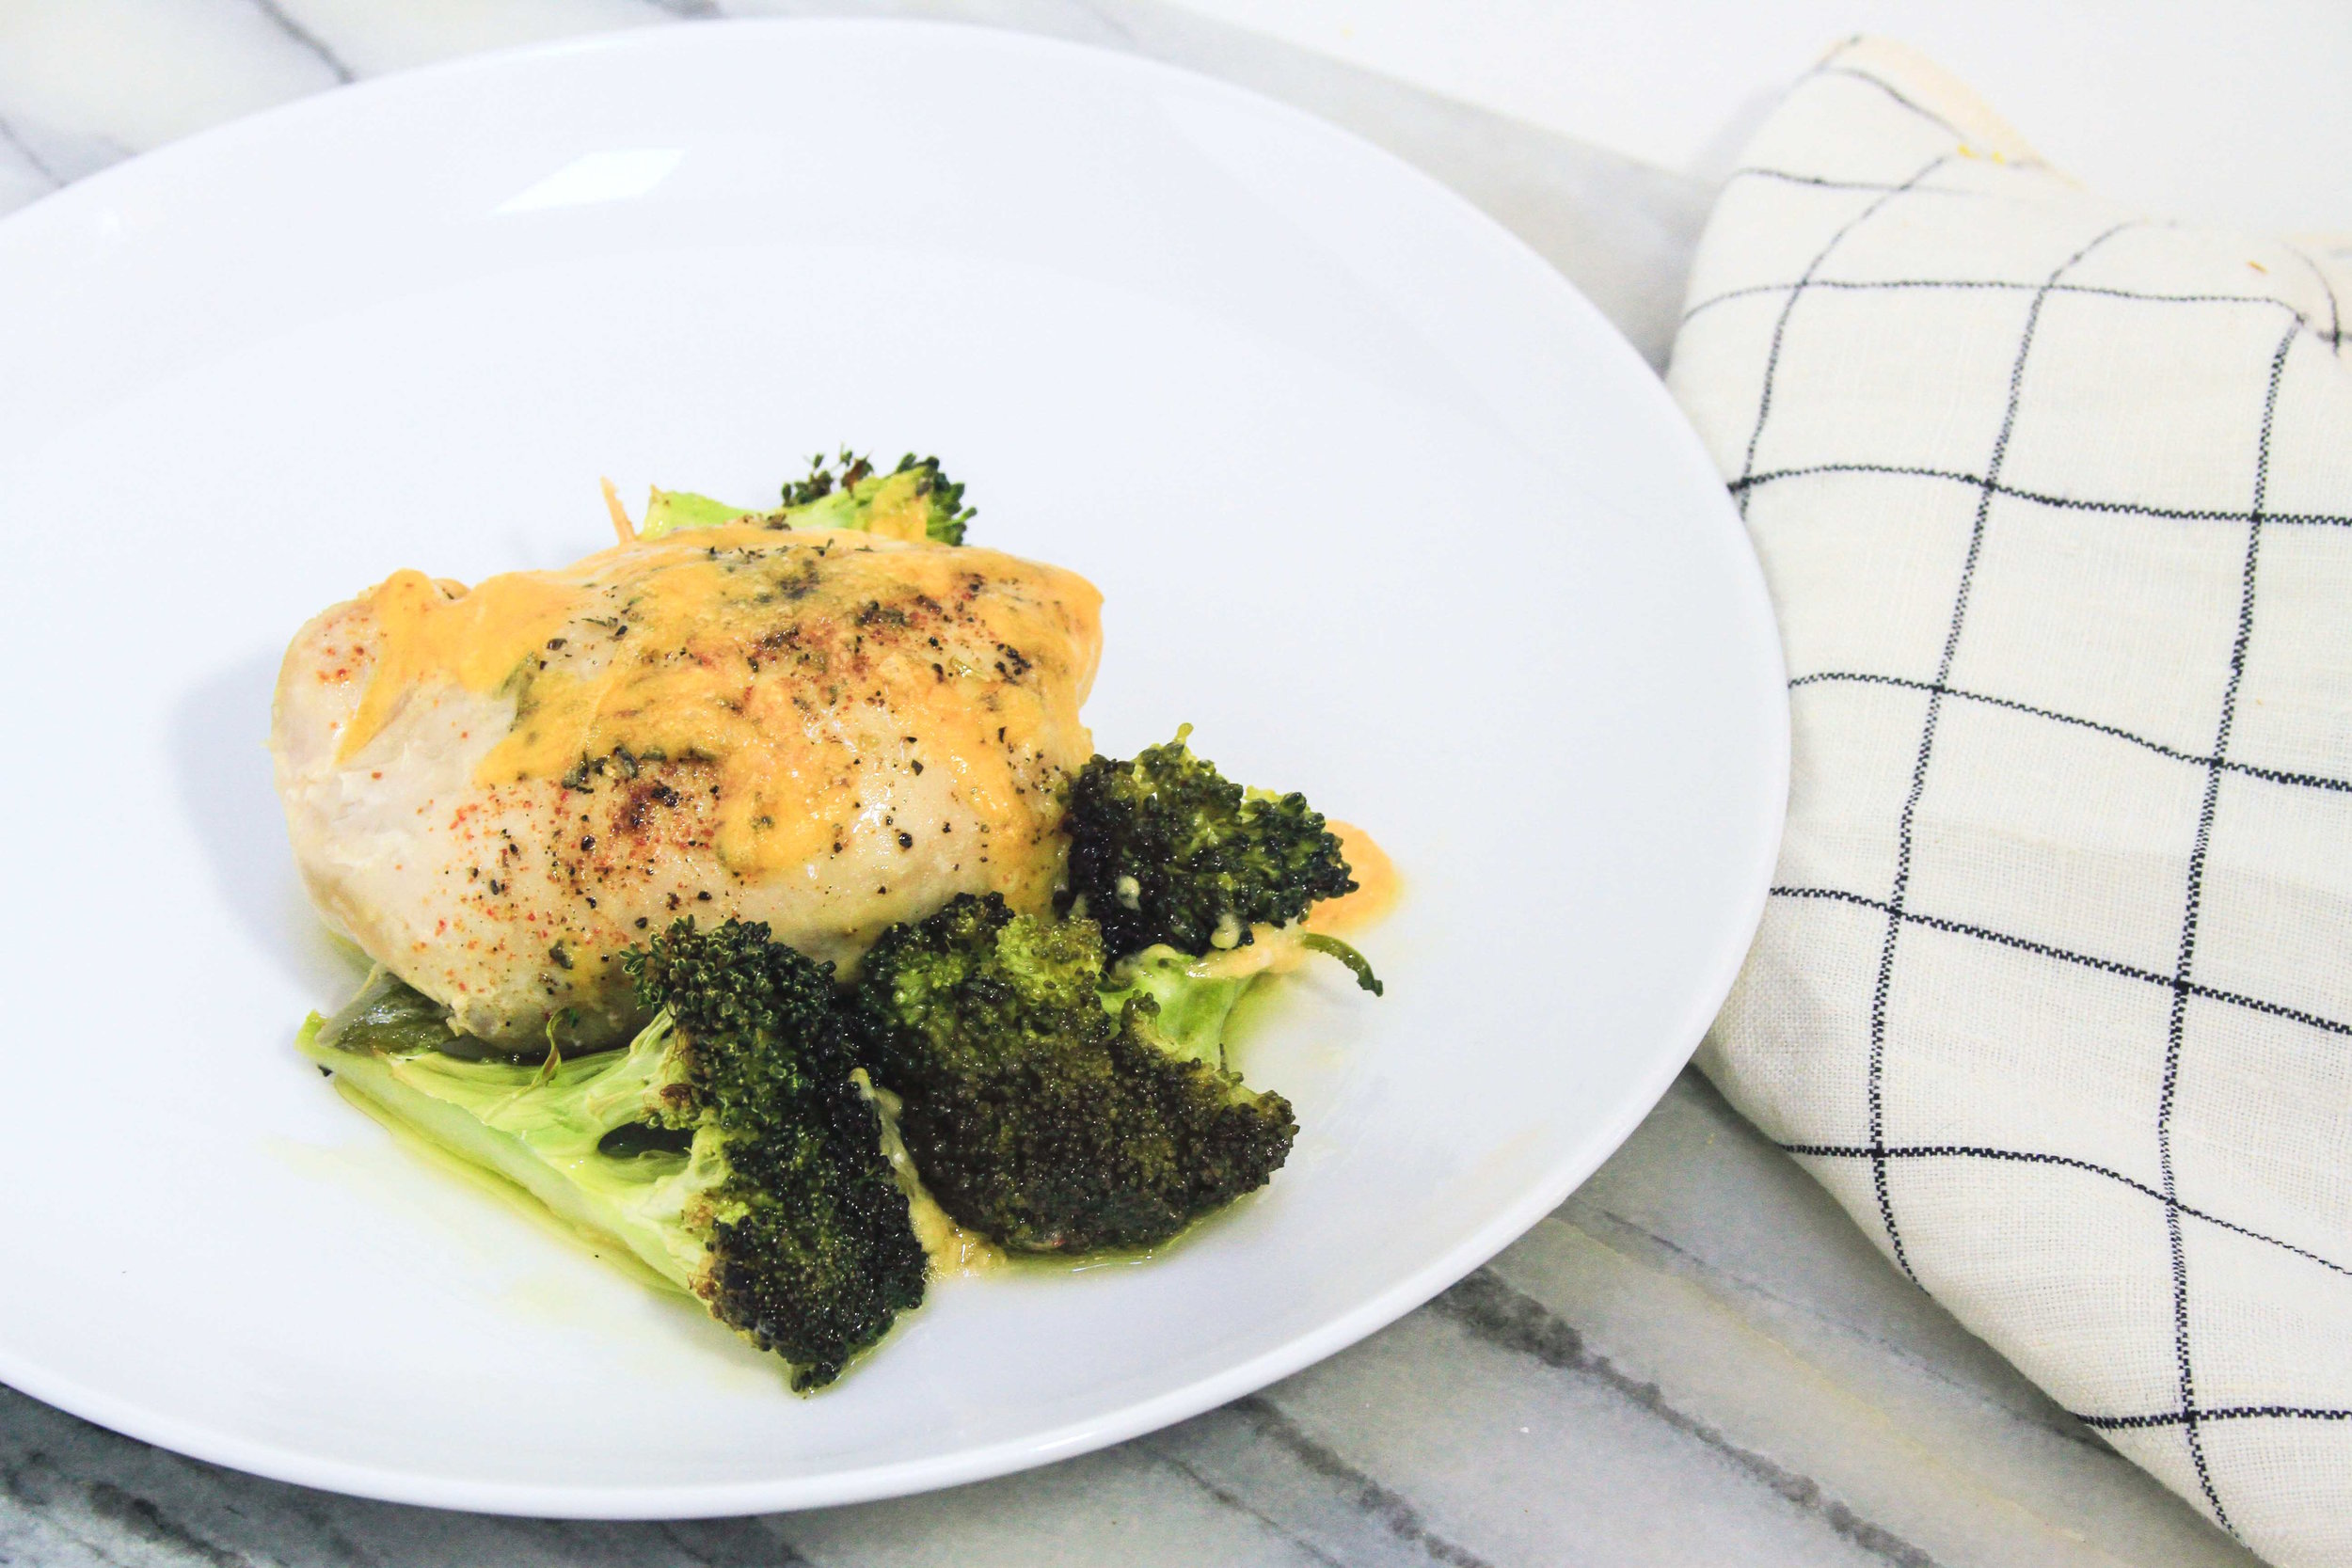 Cheddar and broccoli chicken thighs